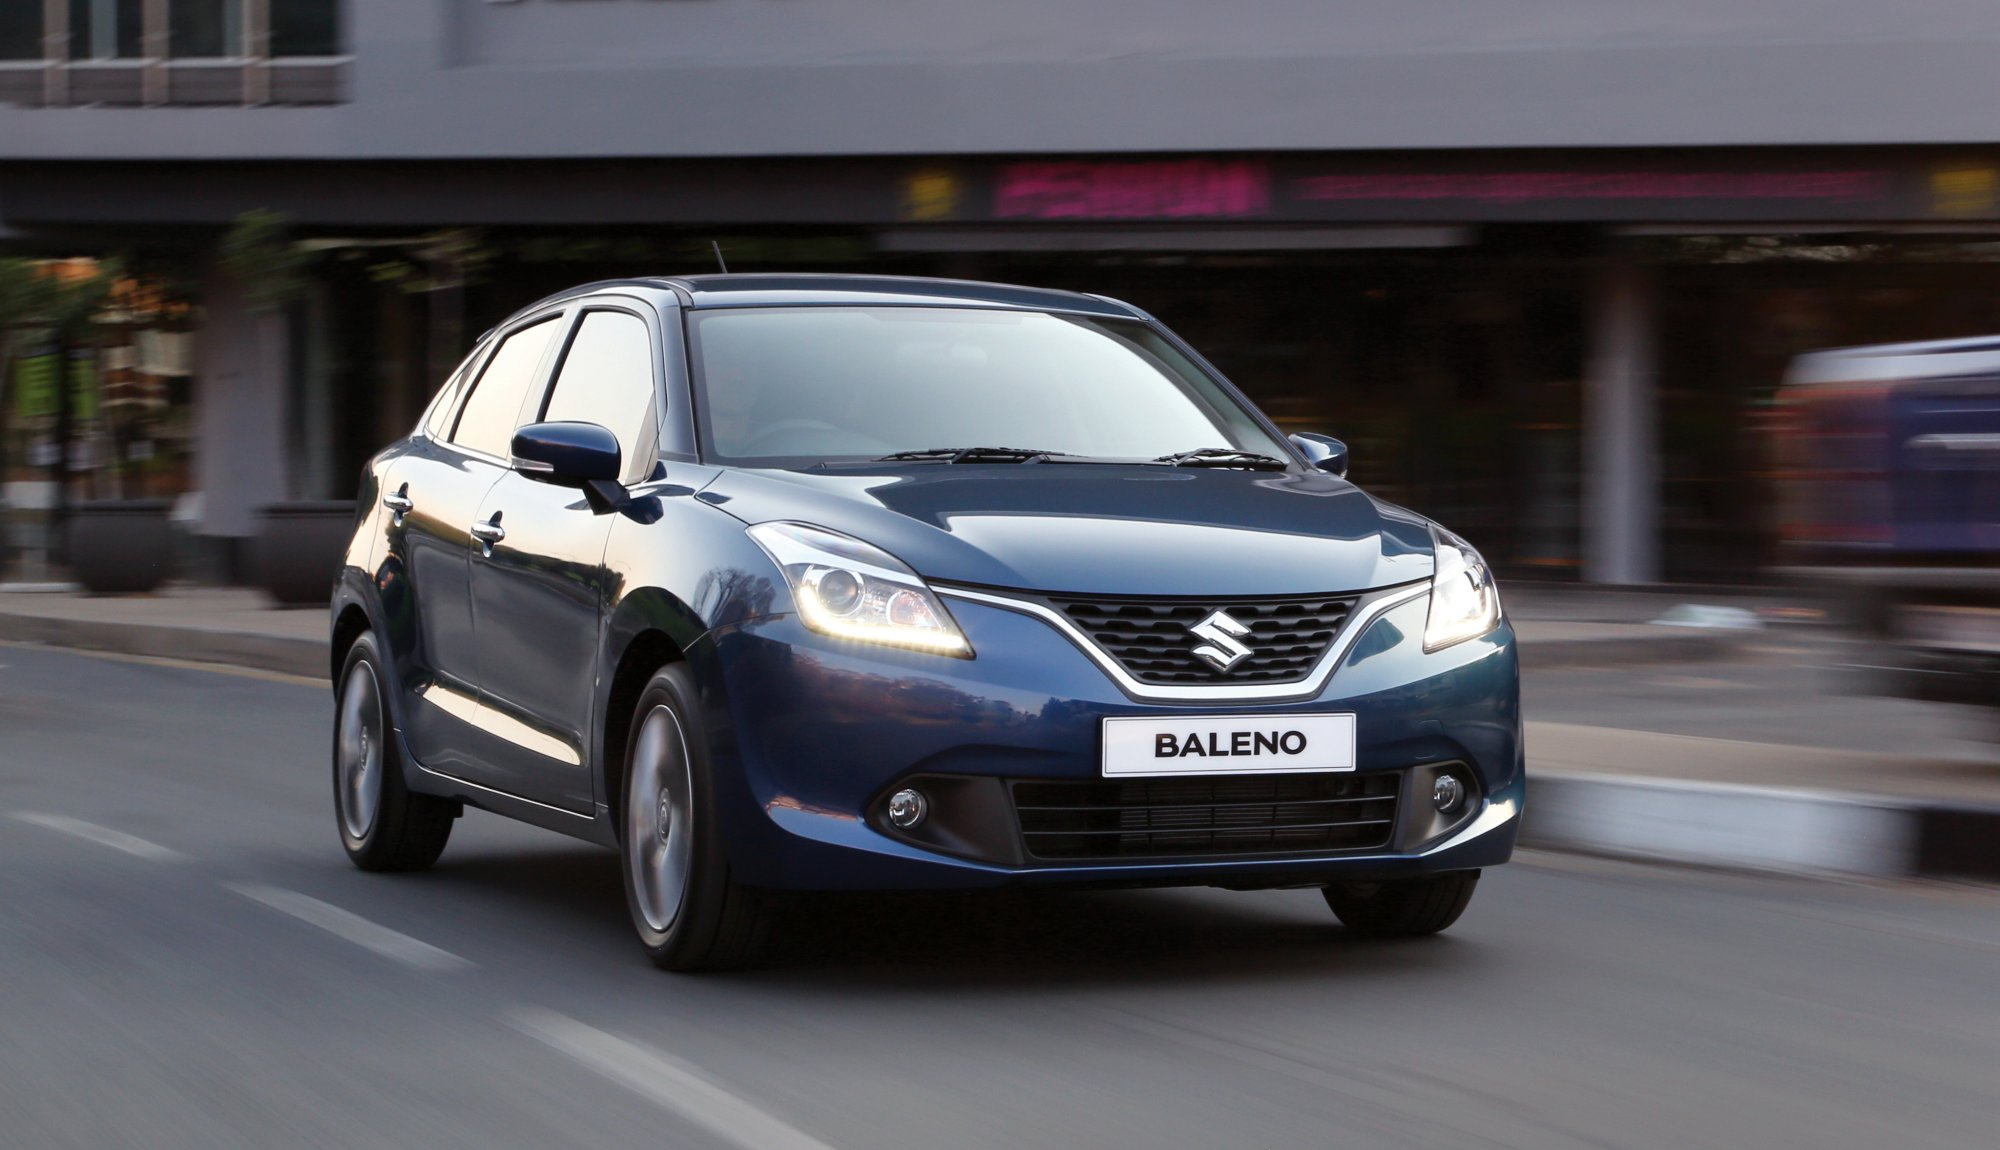 Review - 2017 Suzuki Baleno - Review